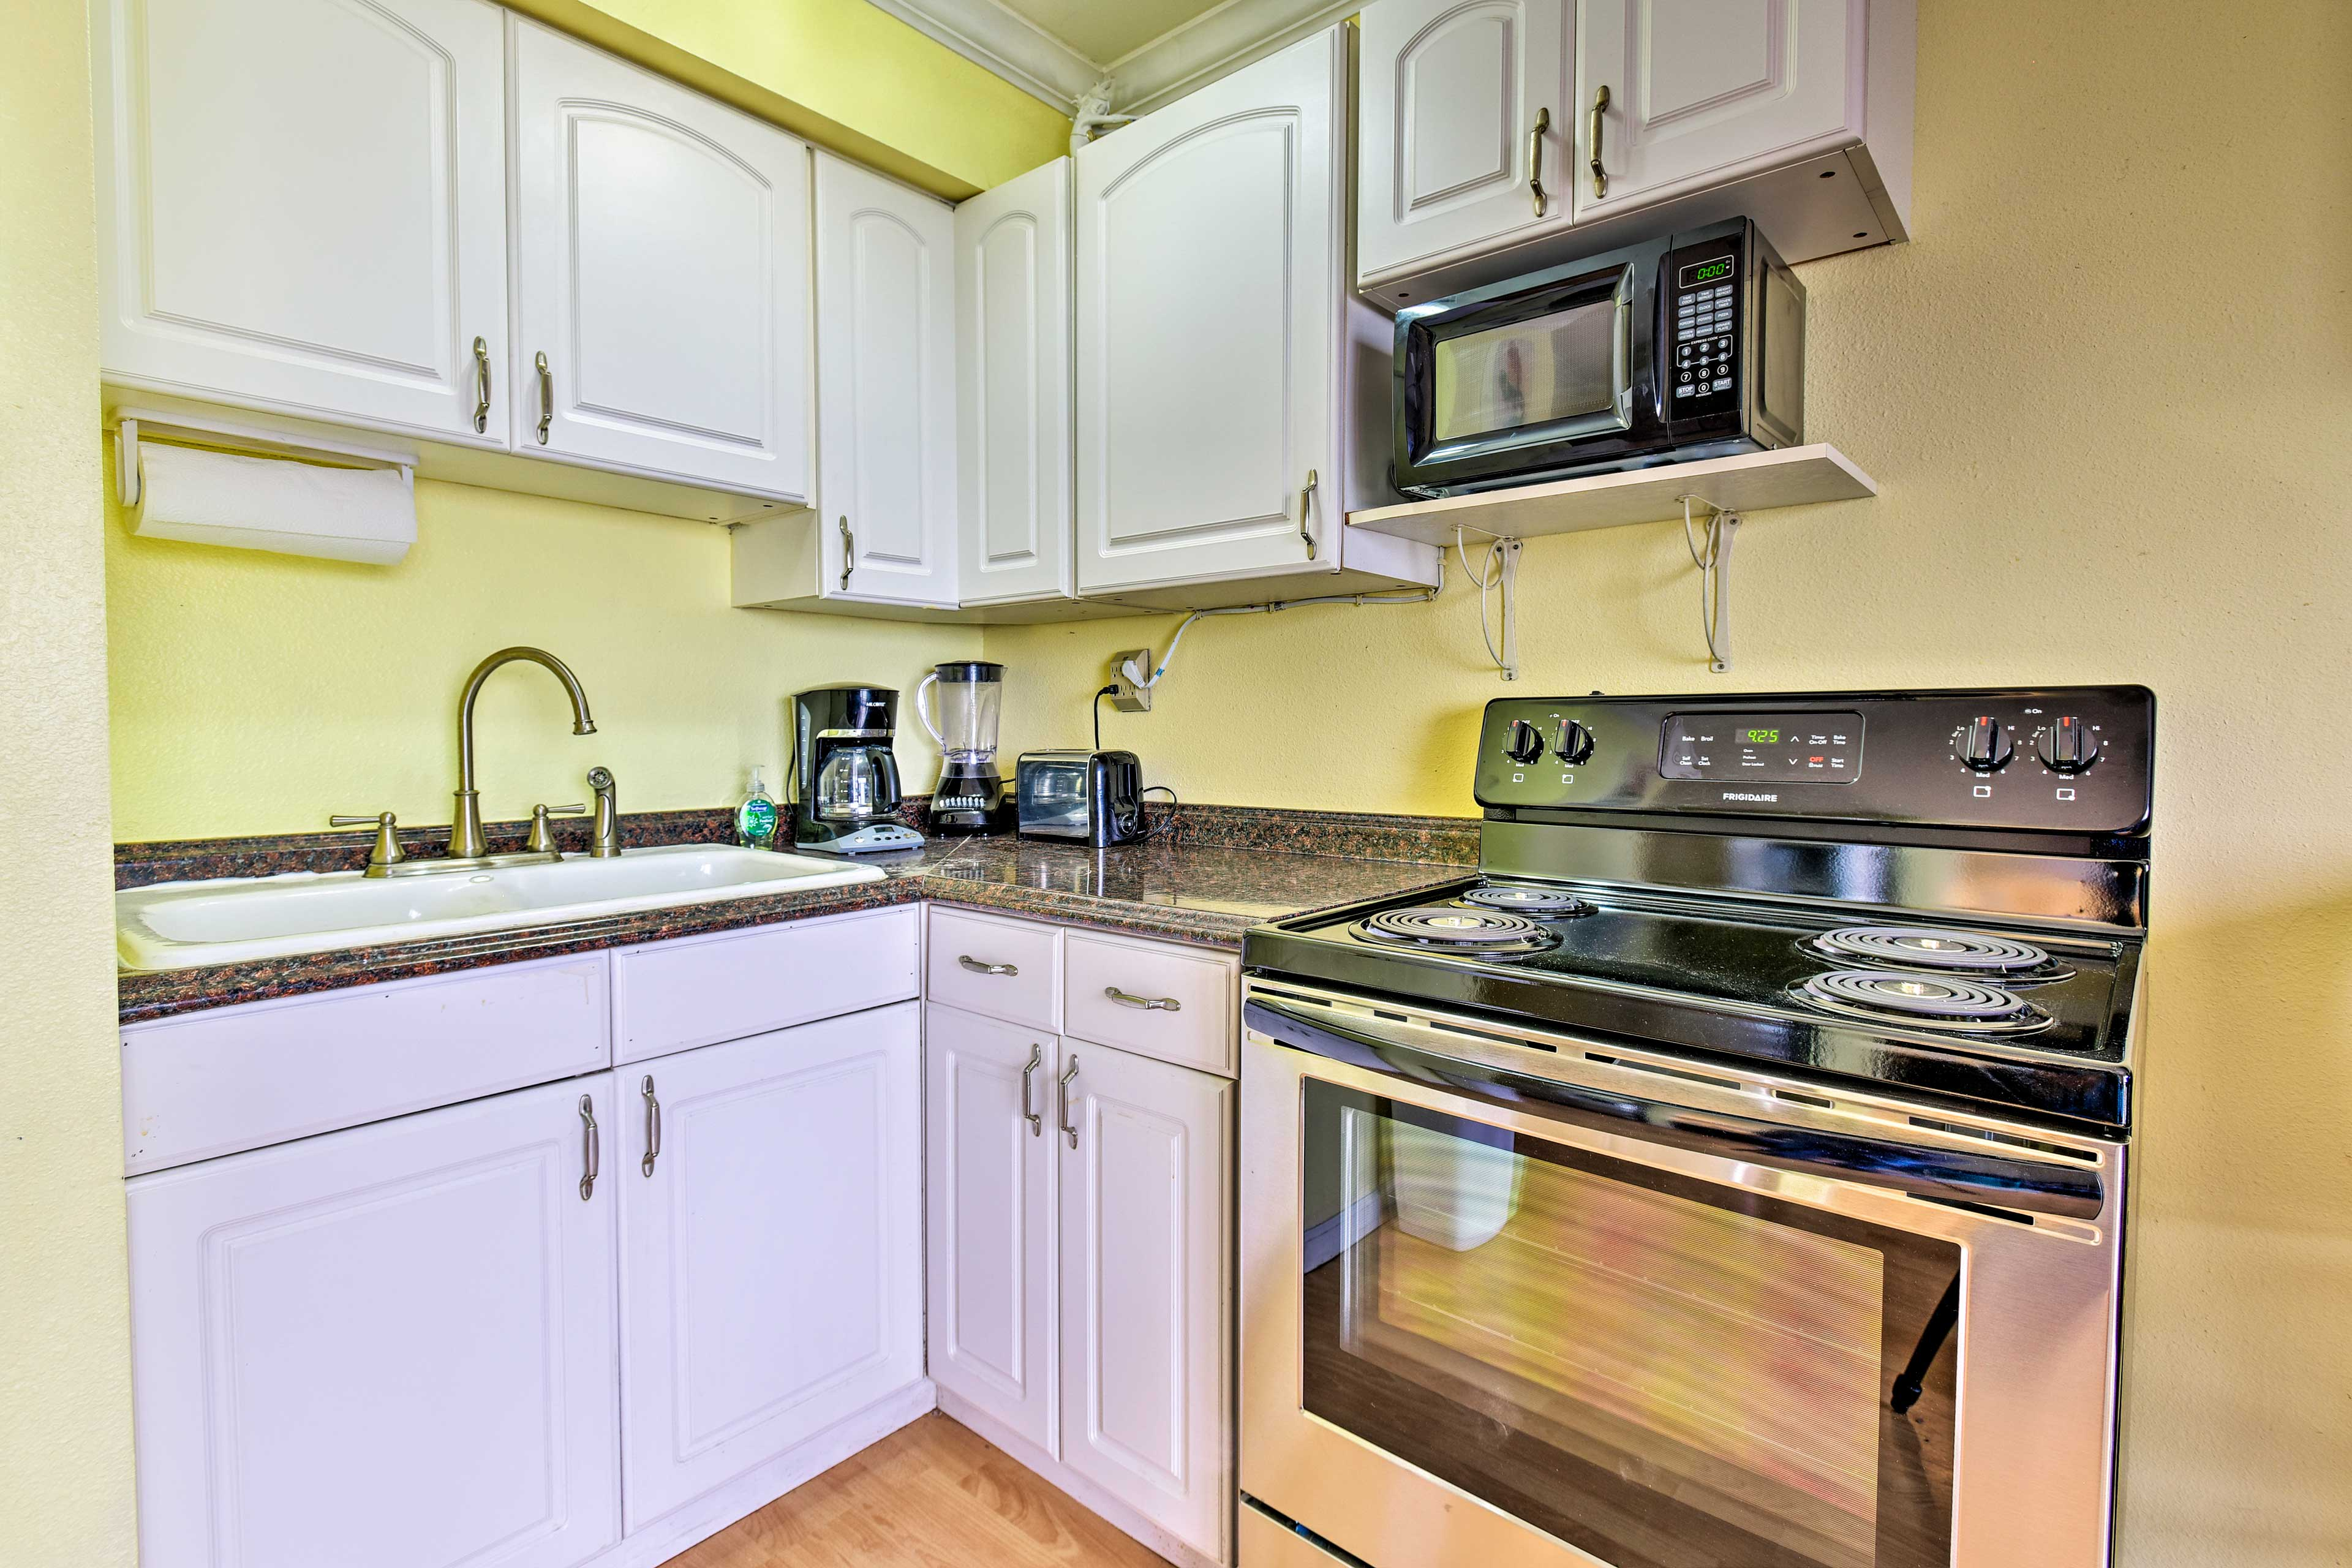 The kitchen features up-to-date appliances and plenty of space to cook.